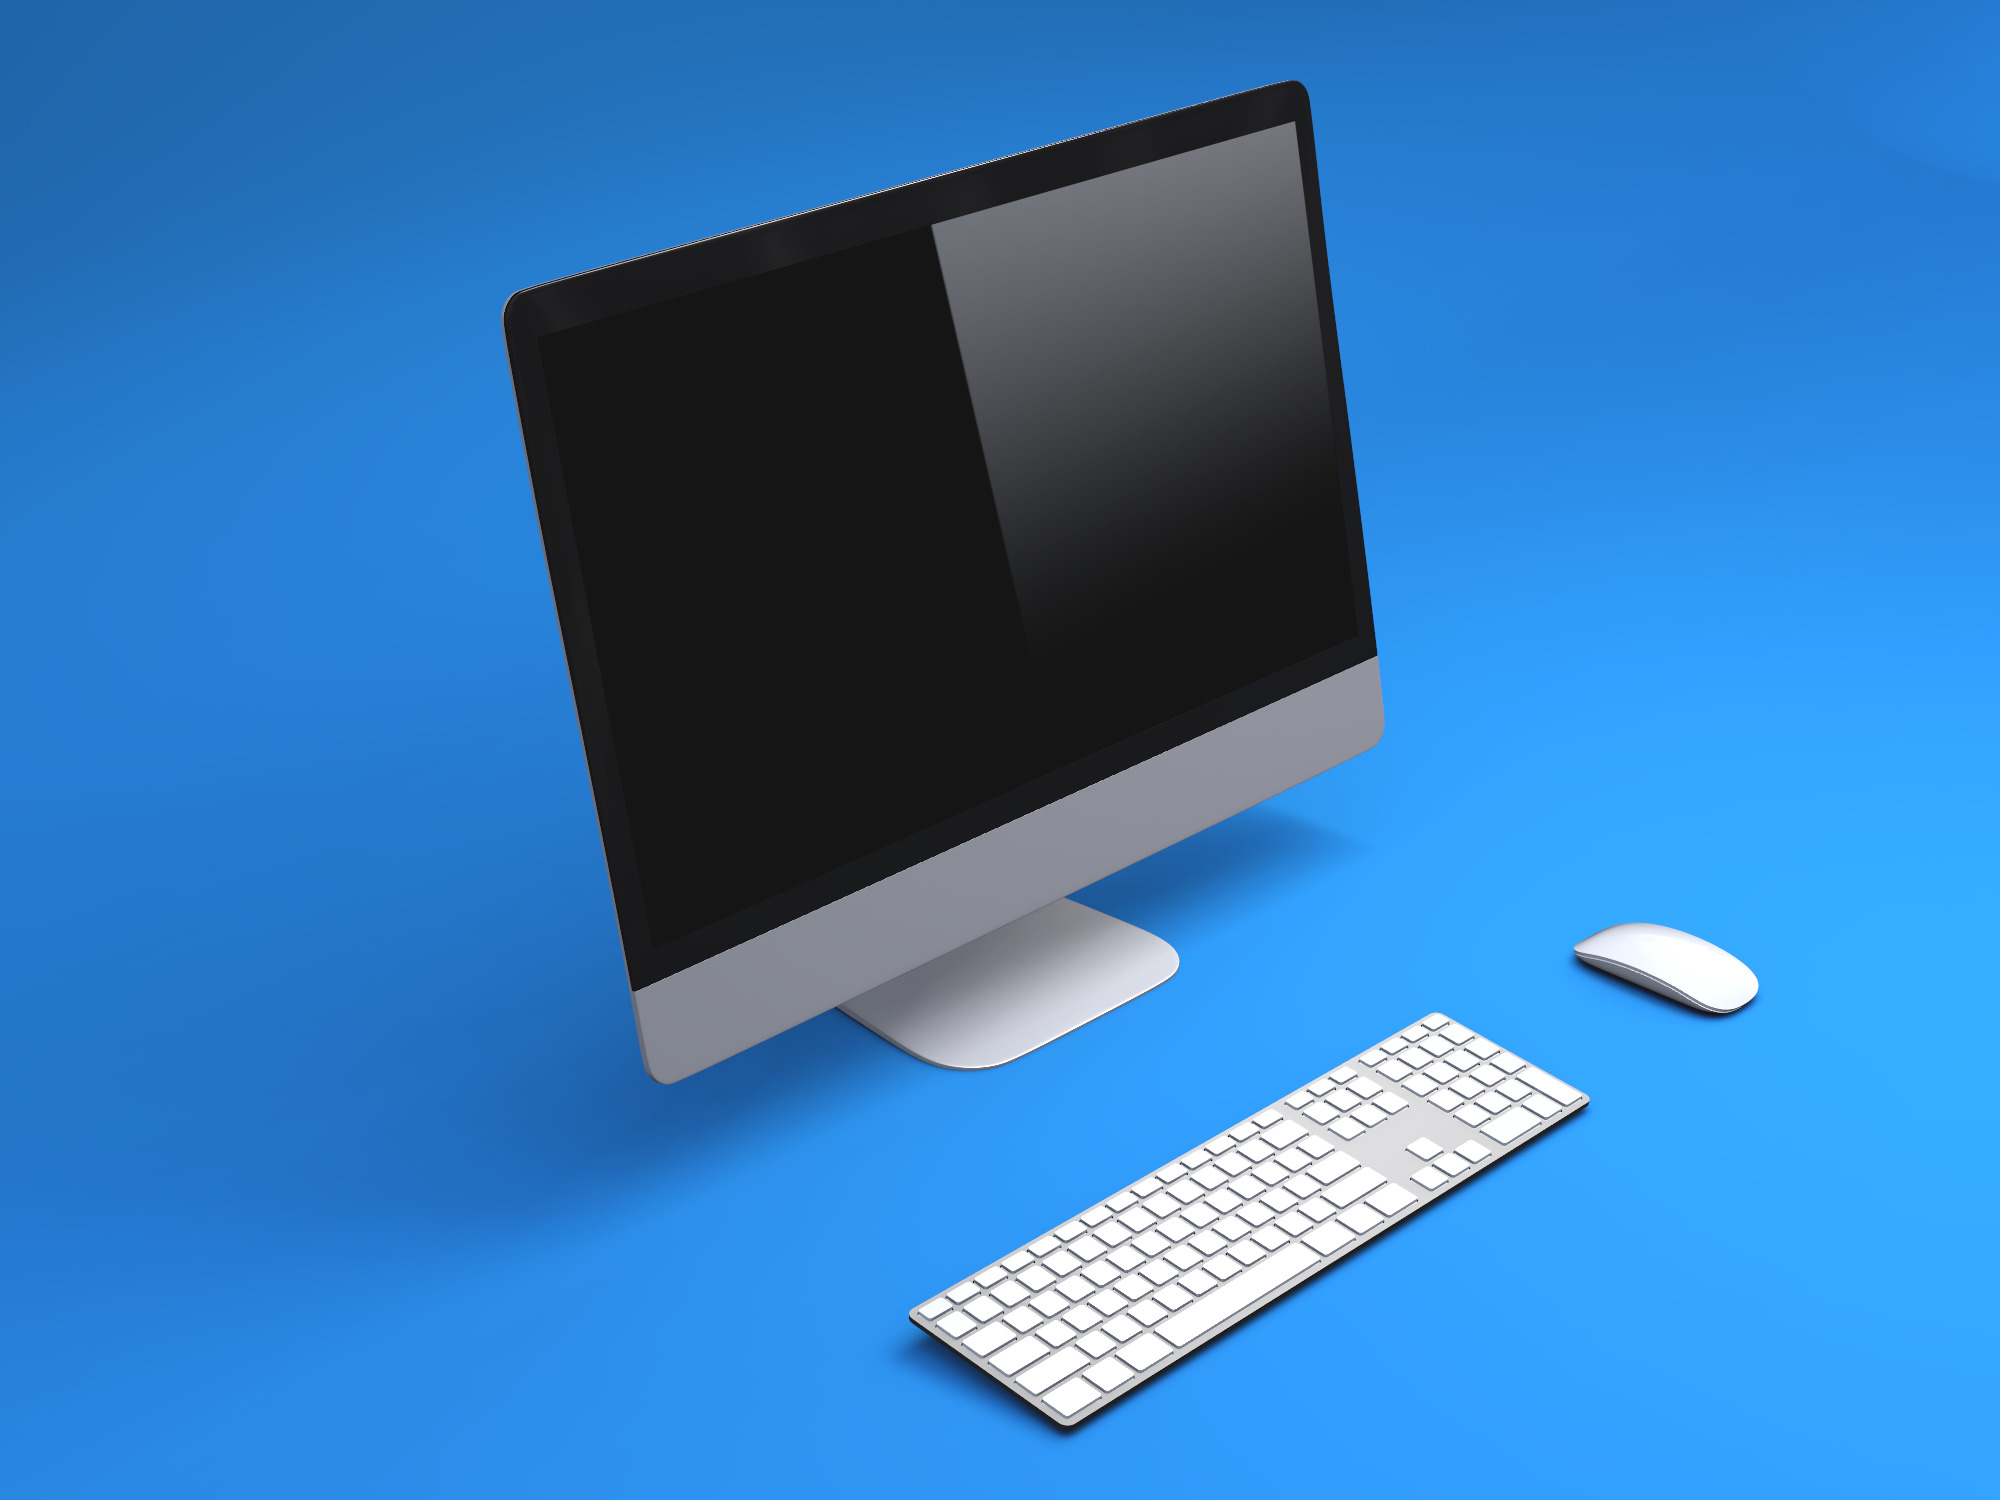 iMac with keyboard mockup - replace image (copy) - 3D design by Ezequiel Cadailhon on Feb 22, 2019